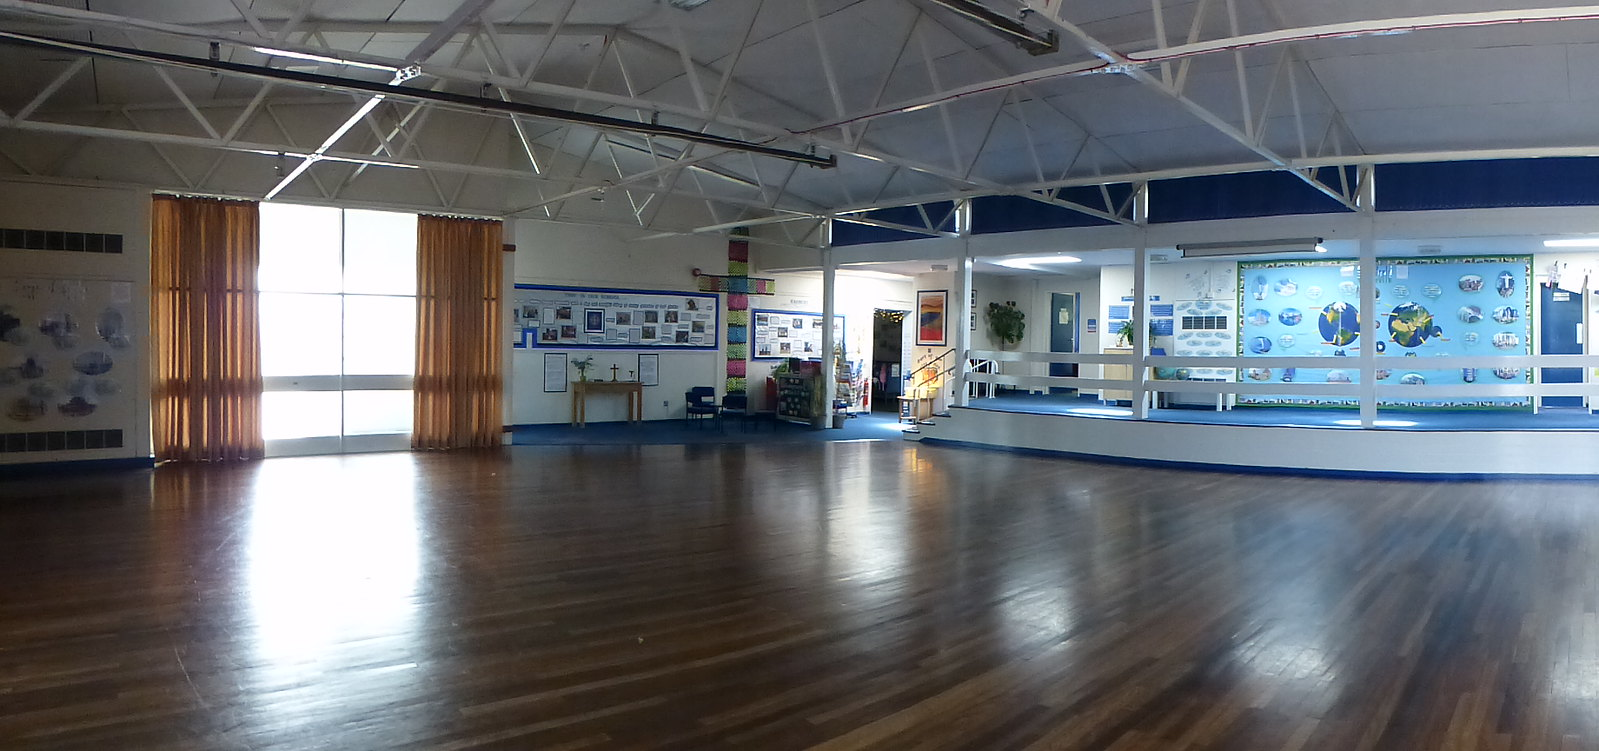 Early Years Hall